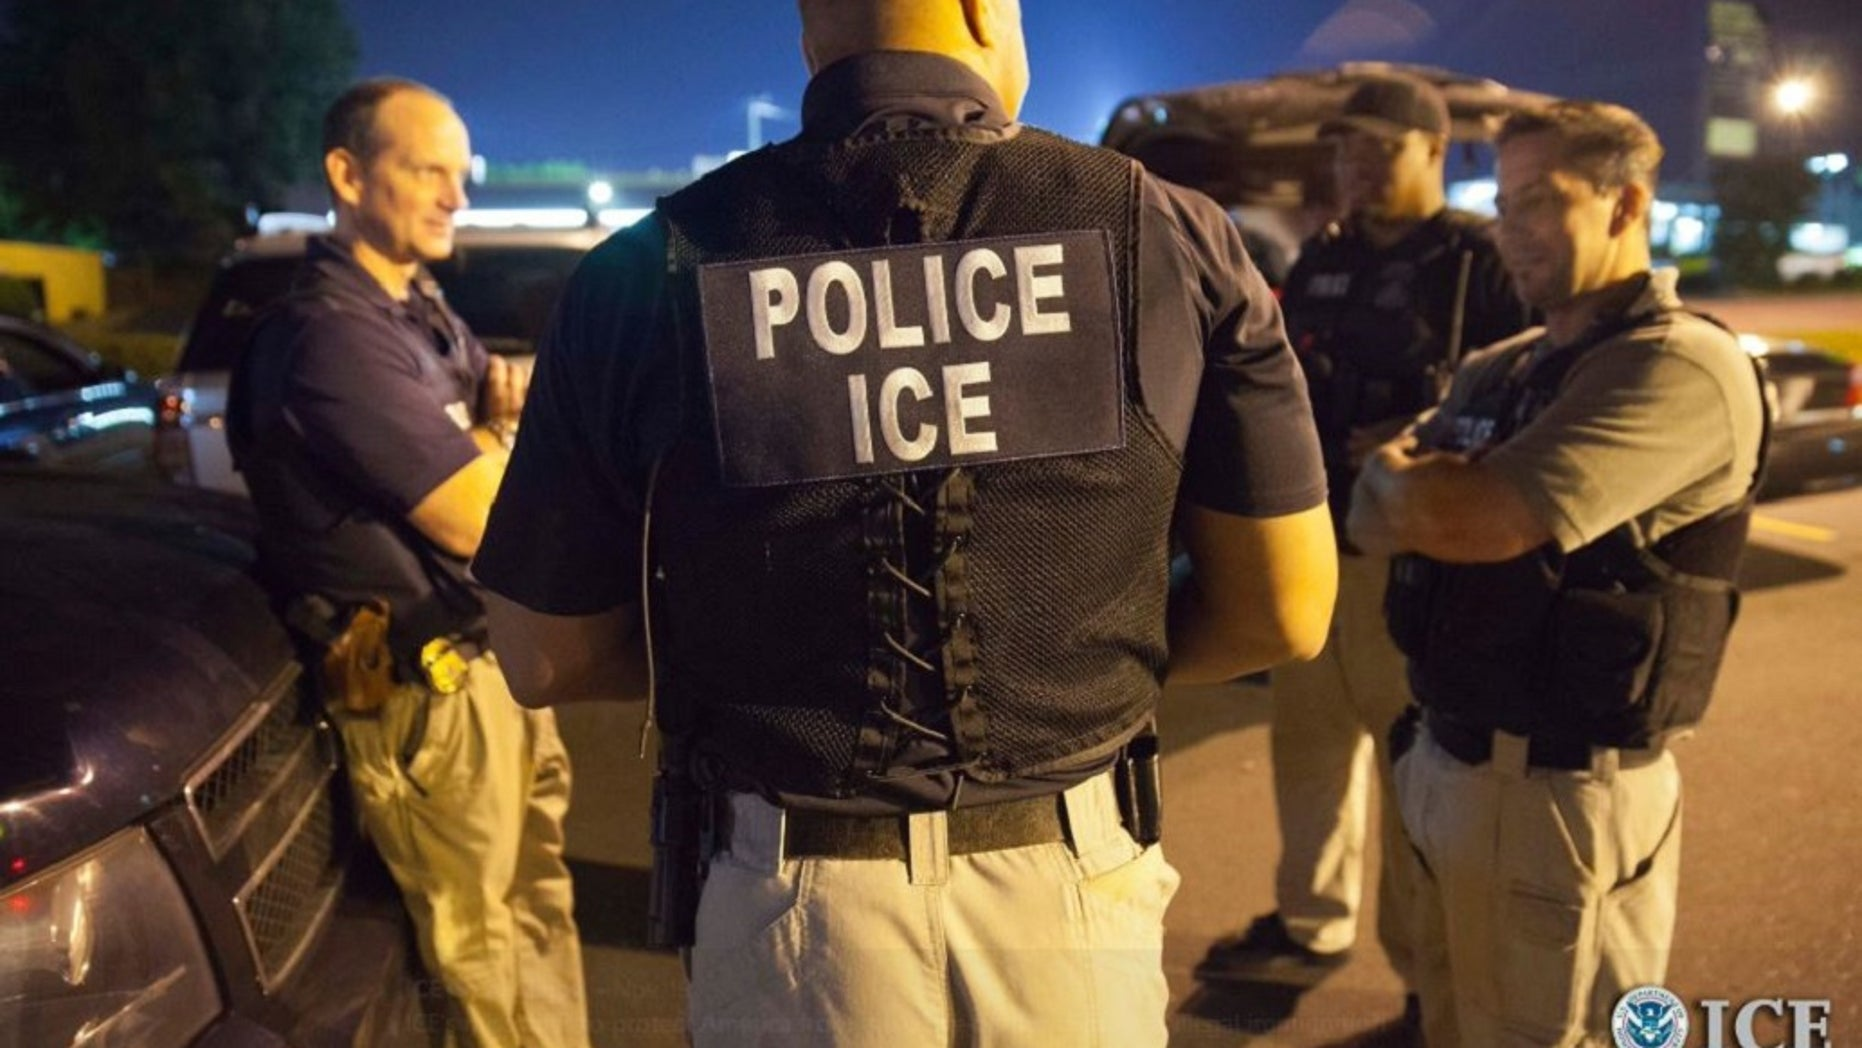 A Portland, Ore. man pleaded guilty to trying to bribe an Immigration and Customs Enforcement (ICE) agent.